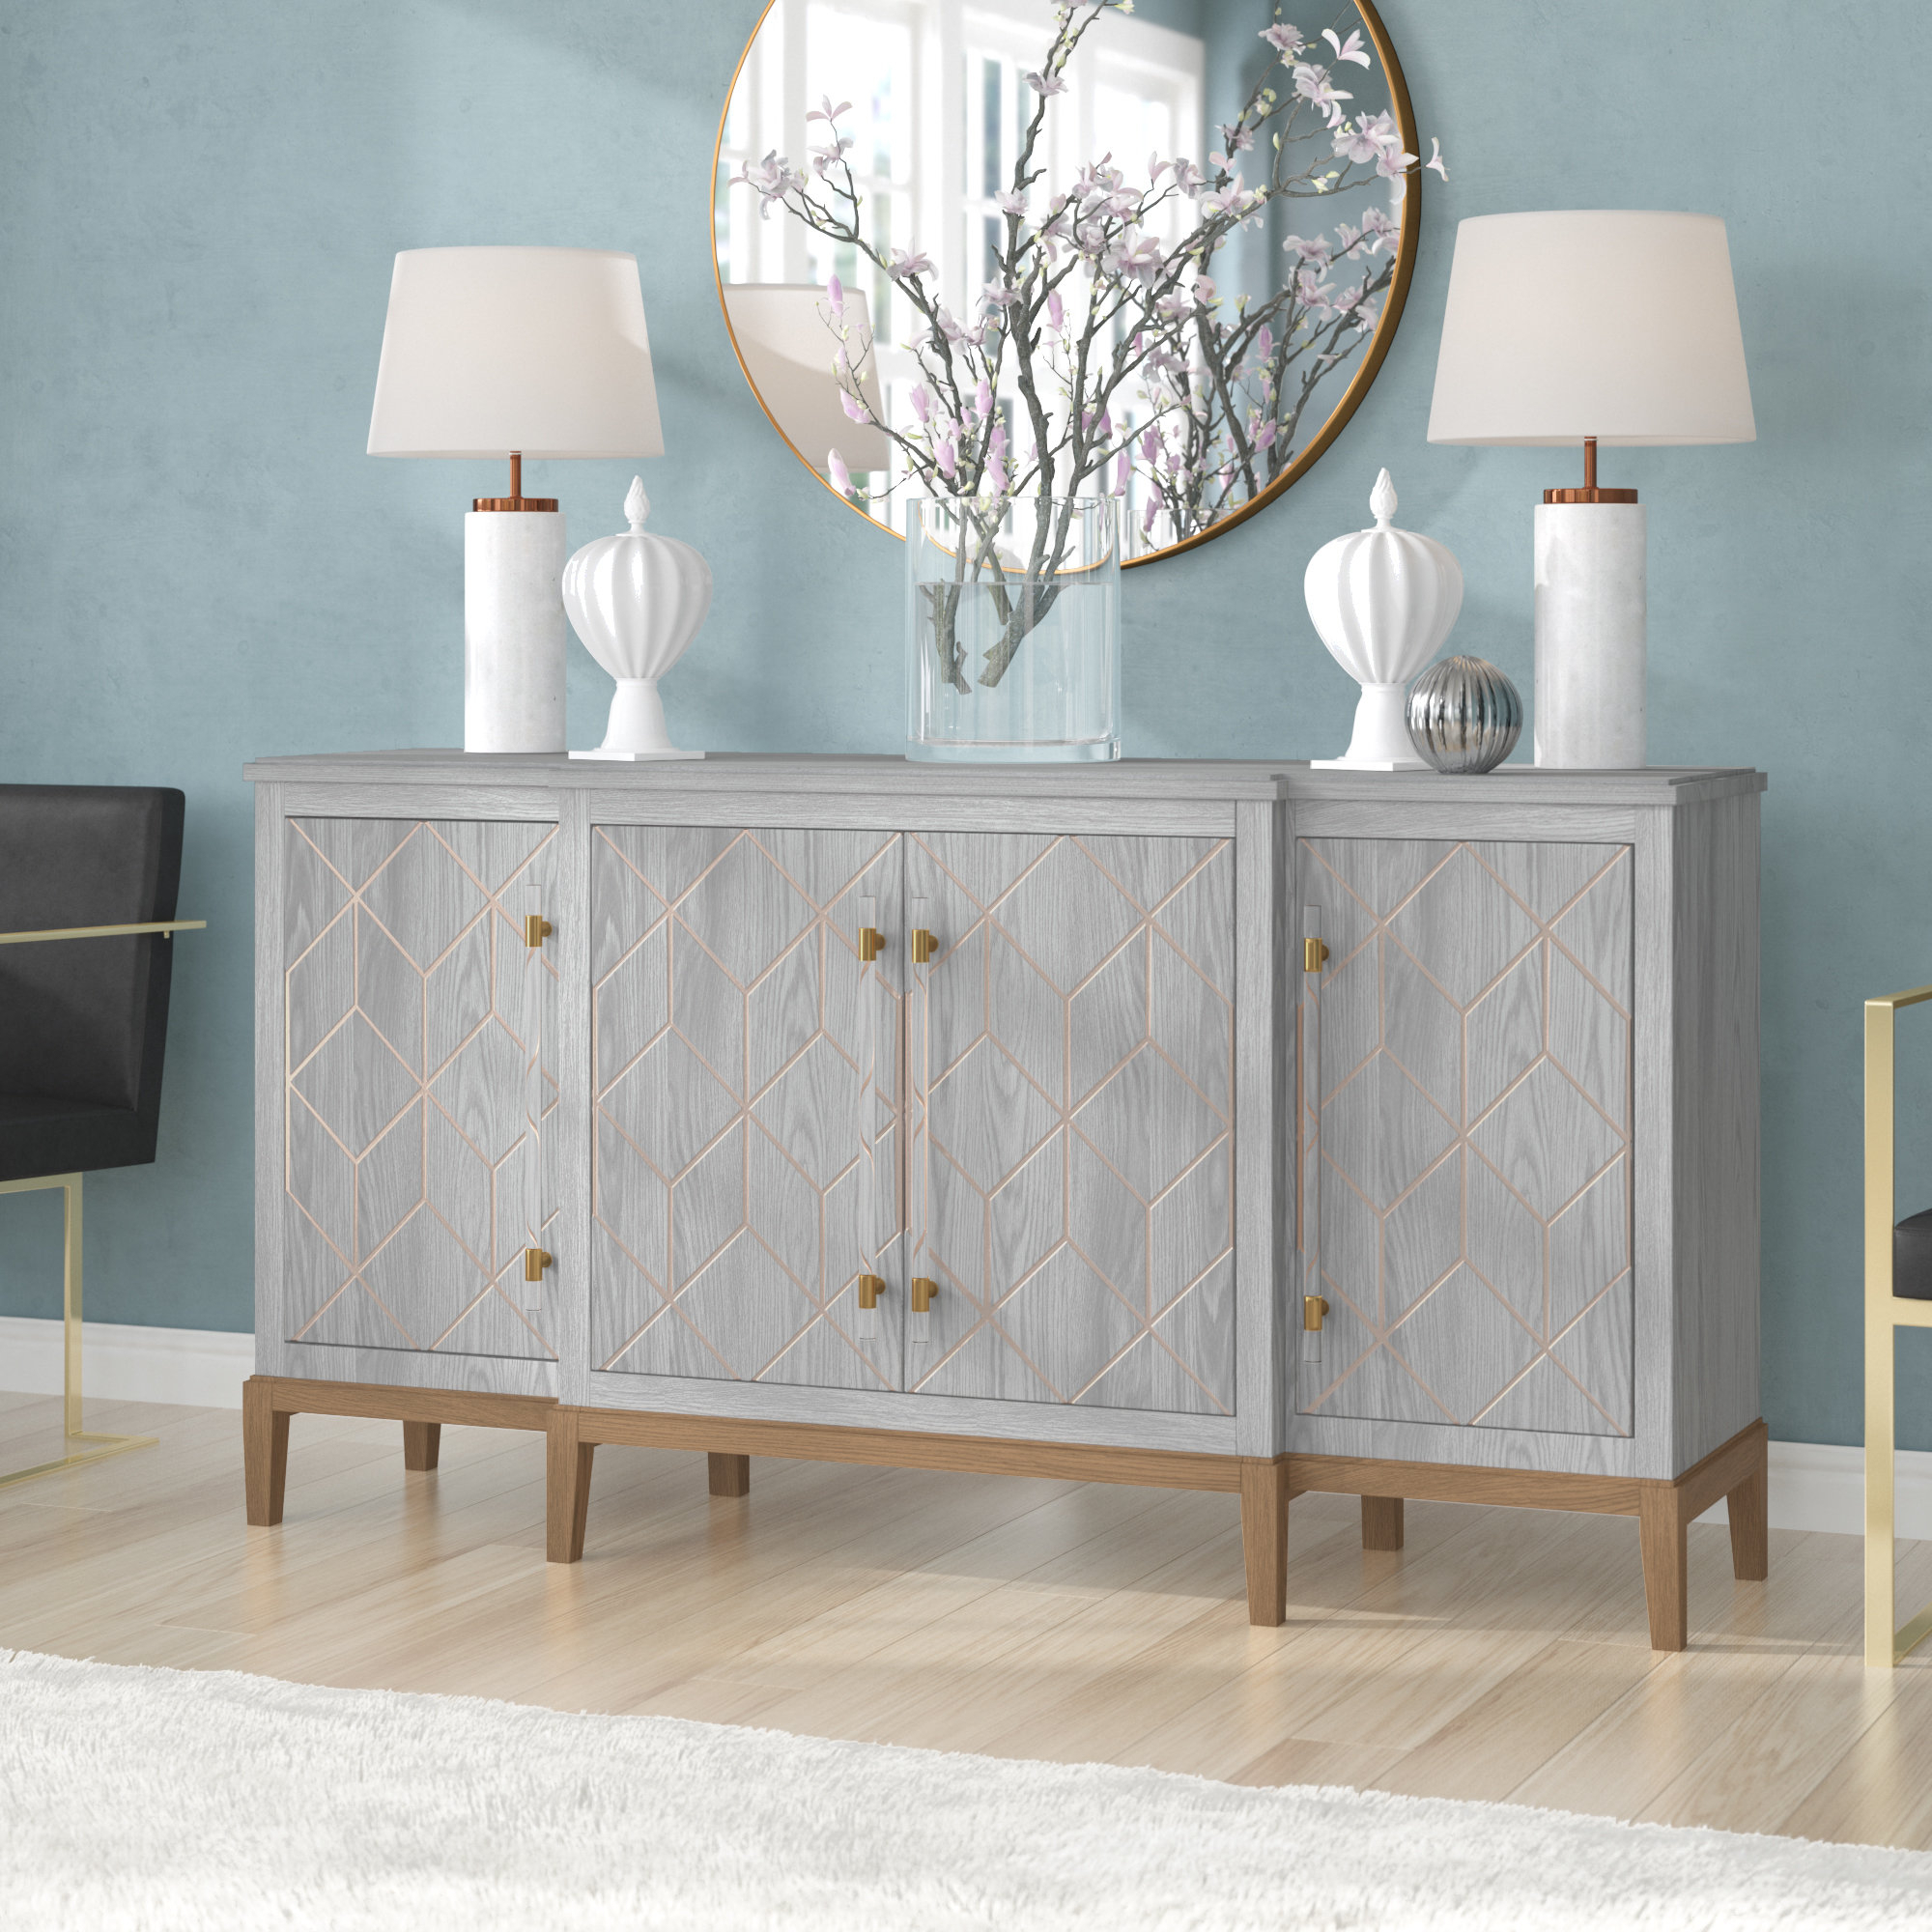 Extra Large Credenza | Wayfair Within Recent Barr Credenzas (#10 of 20)